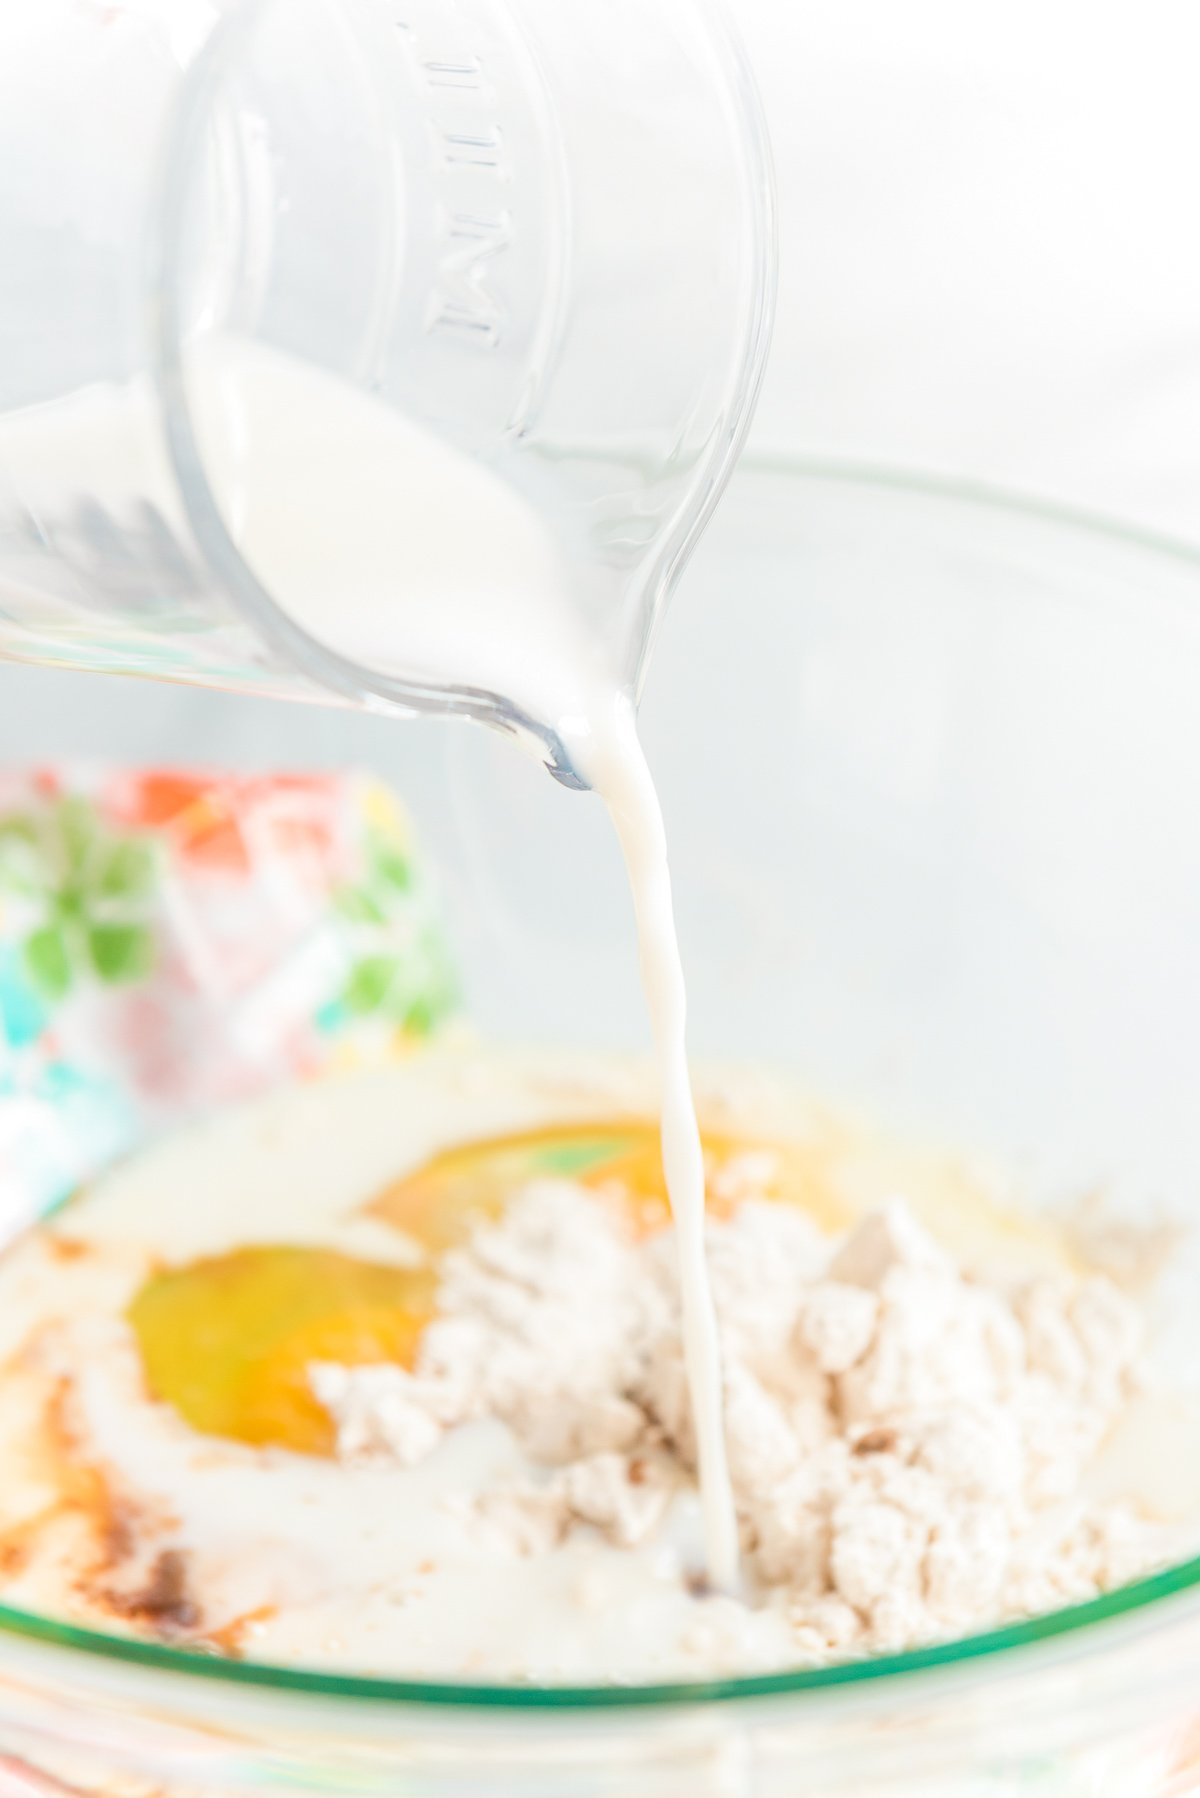 Milk being poured into a mixing bowl with eggs and flour.